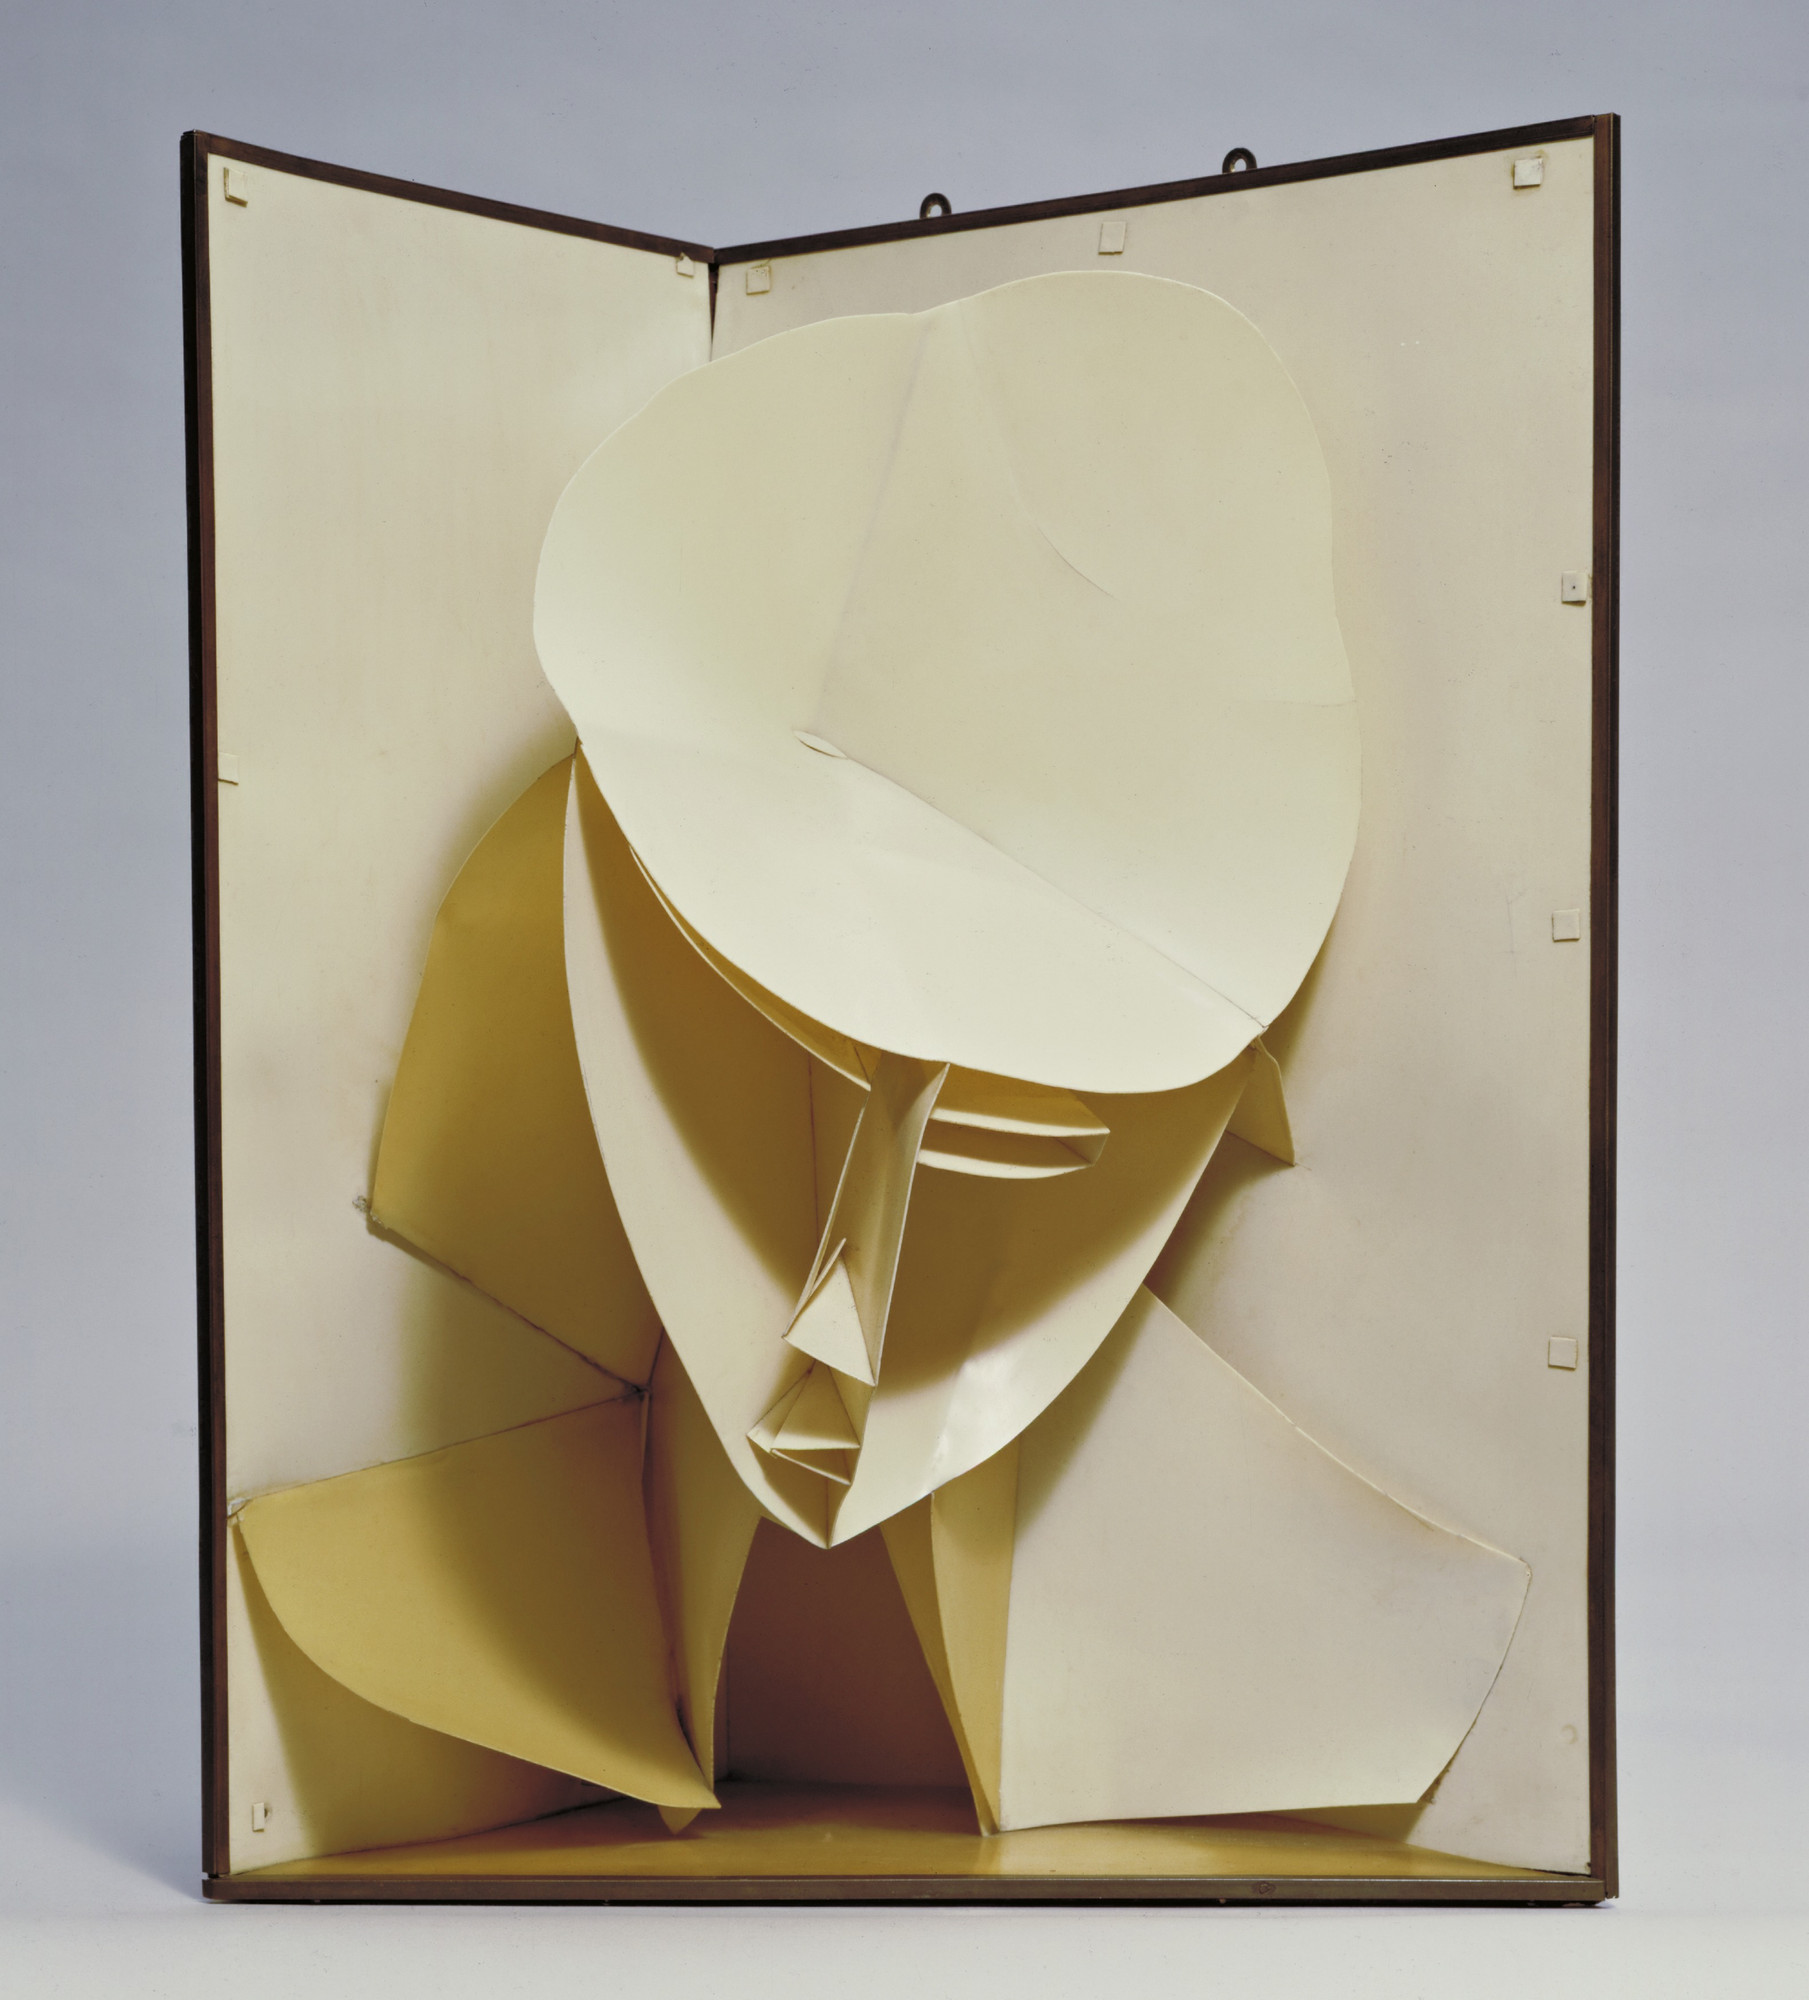 Naum Gabo. Head of a Woman. c. 1917-20 (after a work of 1916)